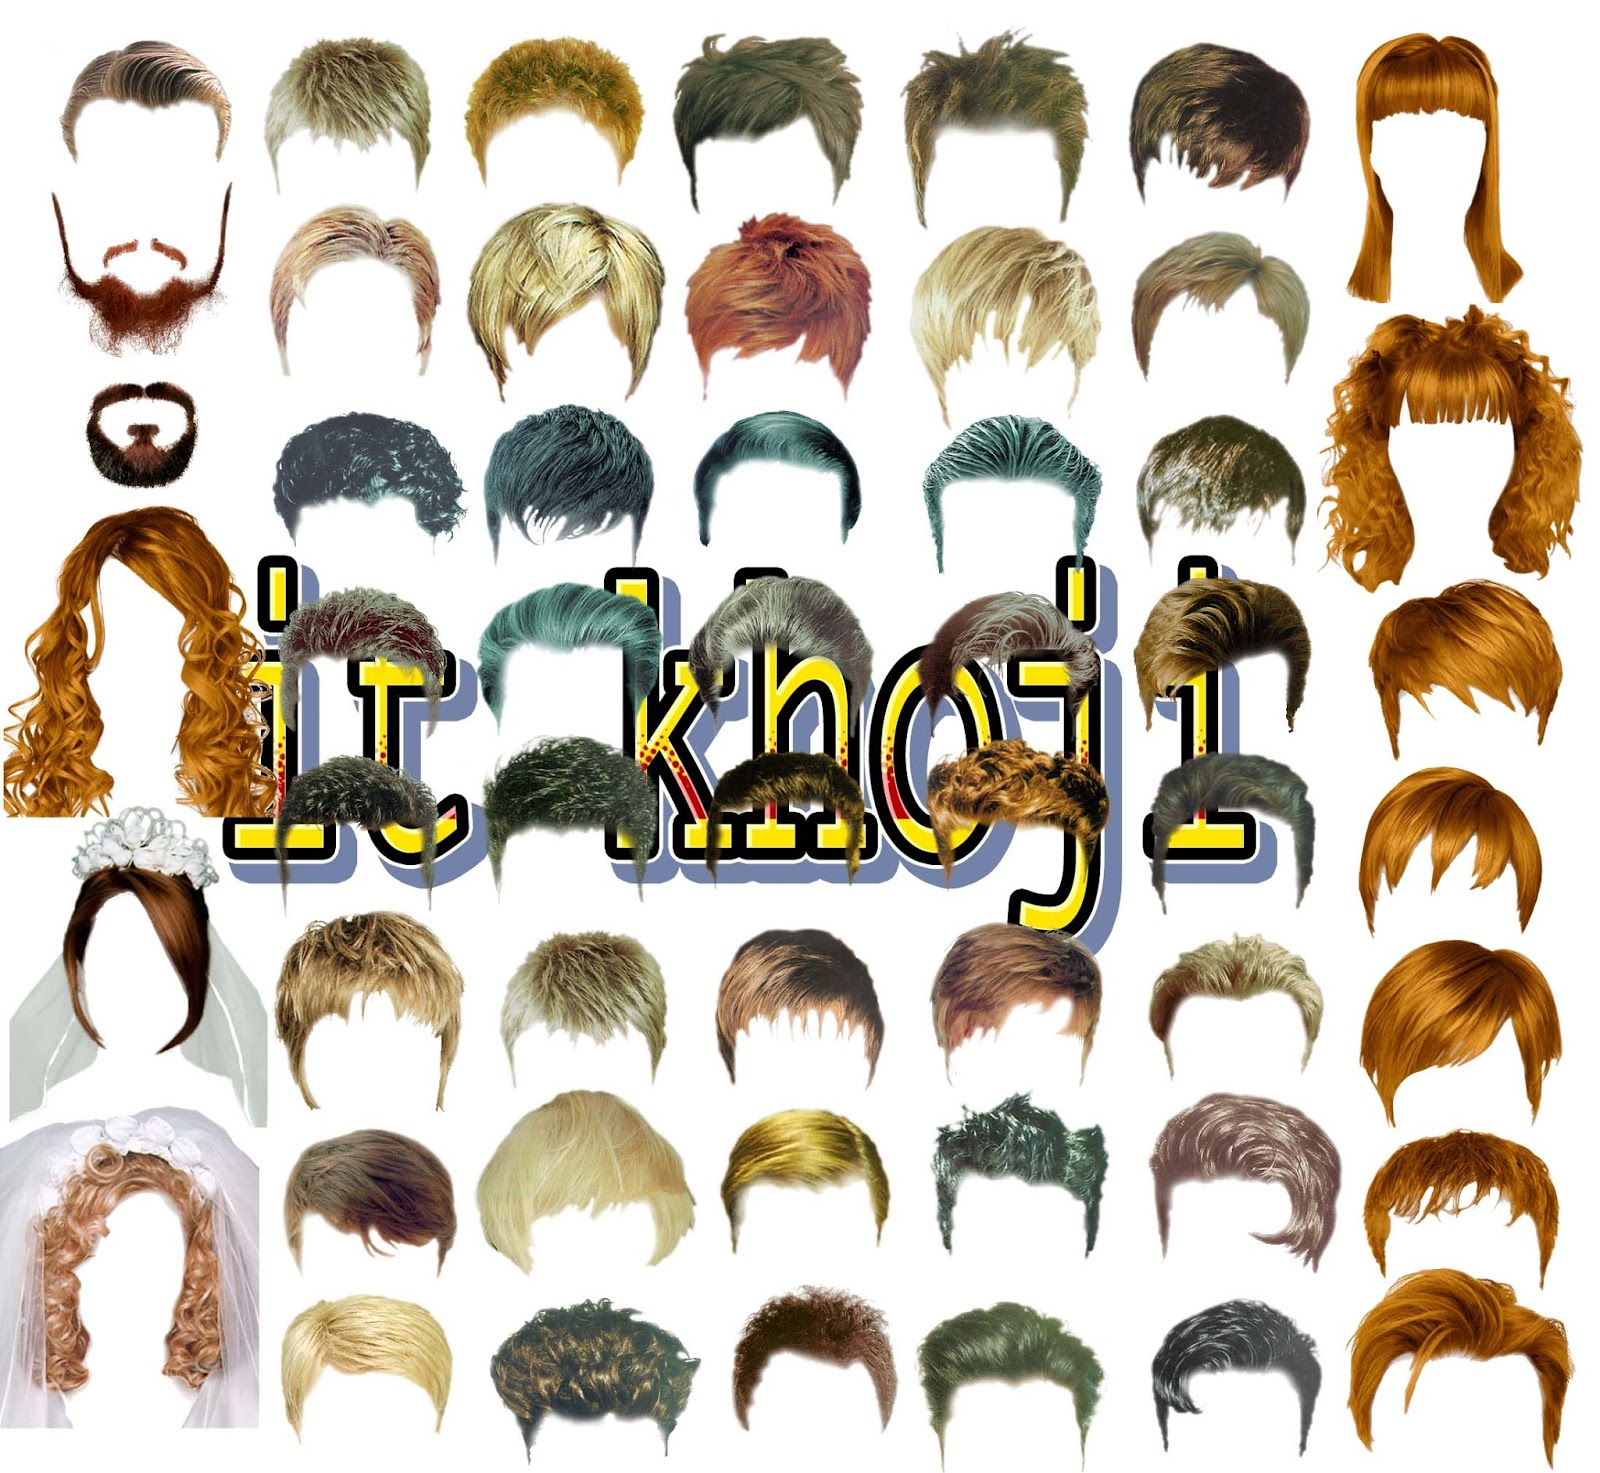 Hair Psd Free Download: Latest Stylish Hair Styles PSD Free Download For Men